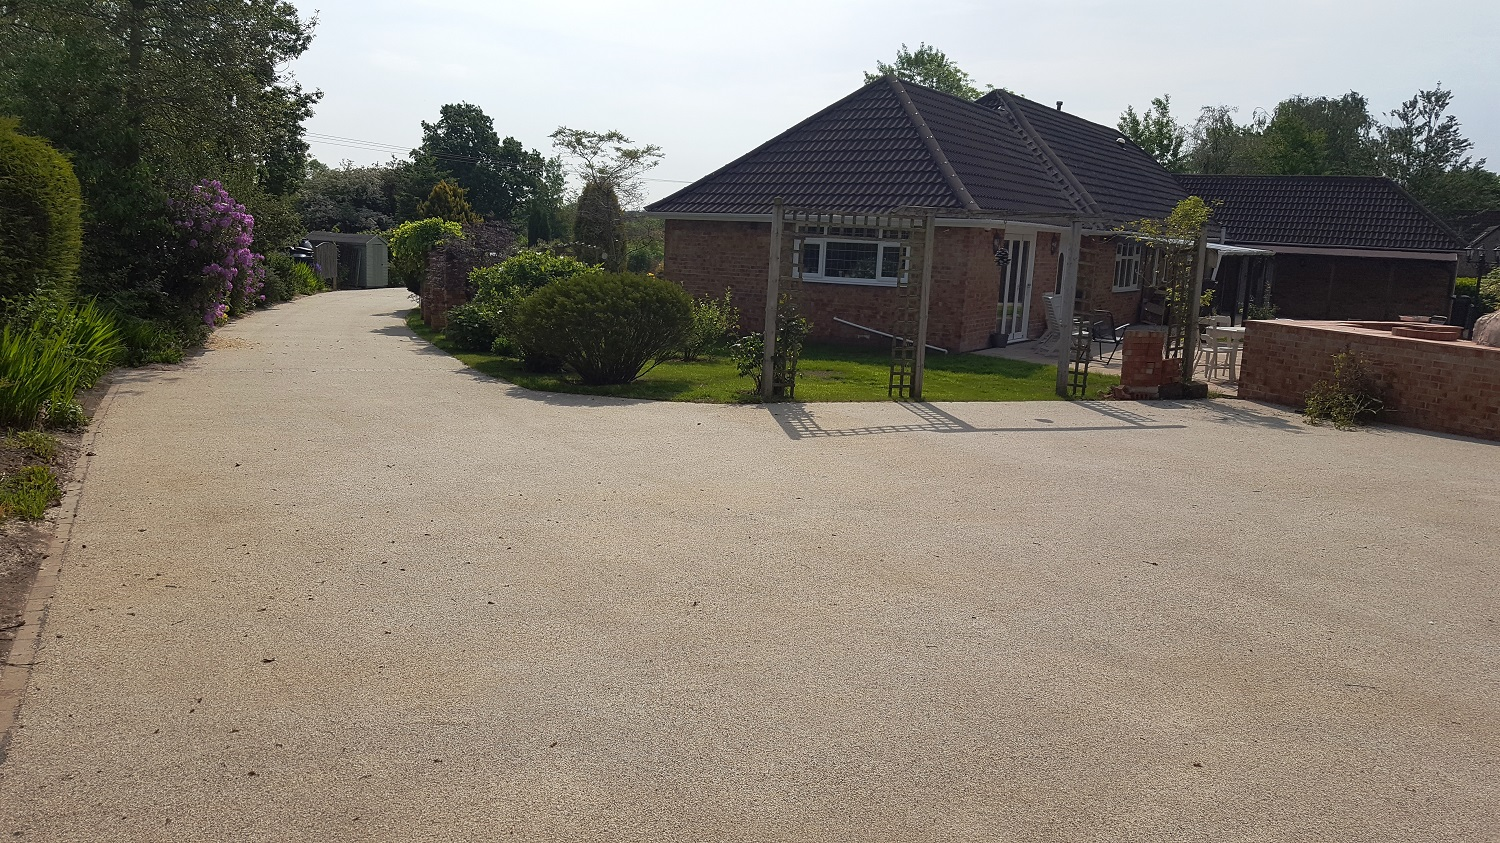 B4a - Resin Bonded Driveway Surfacing at Wingerworth in Chesterfield